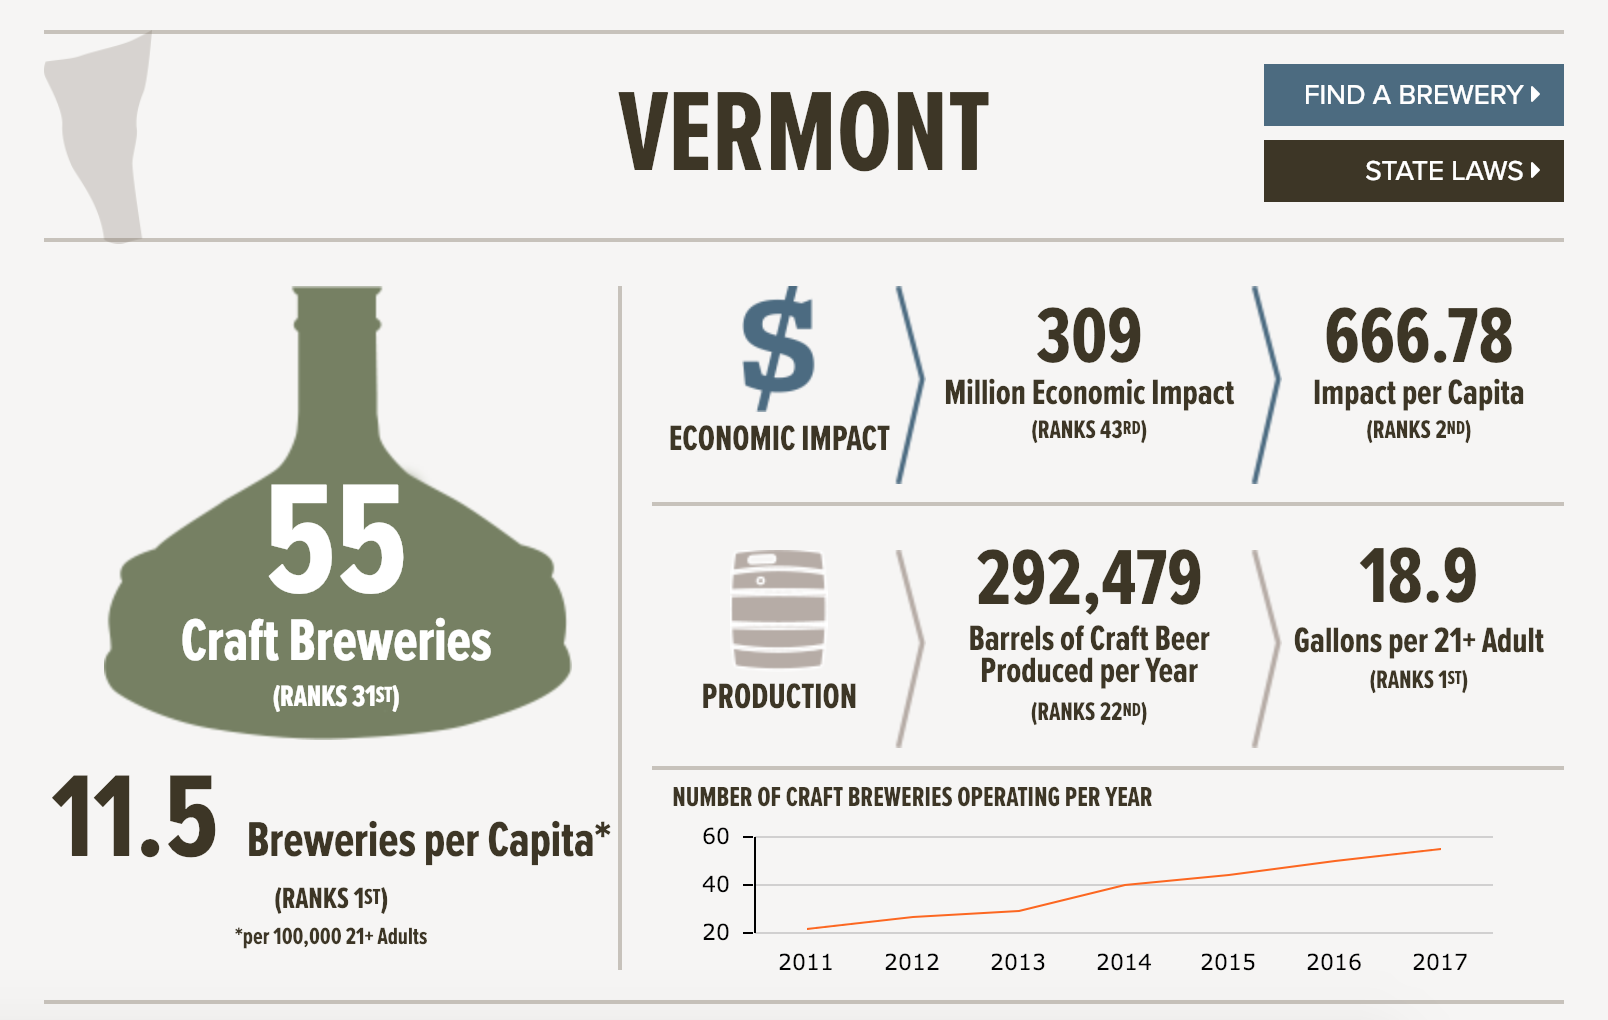 Growth - It's also an exciting time for hops on a national level. Craft beer production in the U.S. has more than tripled since 2007, and in that same time period, craft brewers increased their average use of hops in each barrel of beer by 72%! Speaking of people who like hops, Vermont is home to more brewers (and barrels of beer) per capita than any other state. Vermont brewers currently use enough hops to support more than 300 acres of hop production, yet our state only has about 45 acres currently in production. It's time to grow some more hops! For more info on Vermont's beer industry, check out these Brewer's Association statistics.